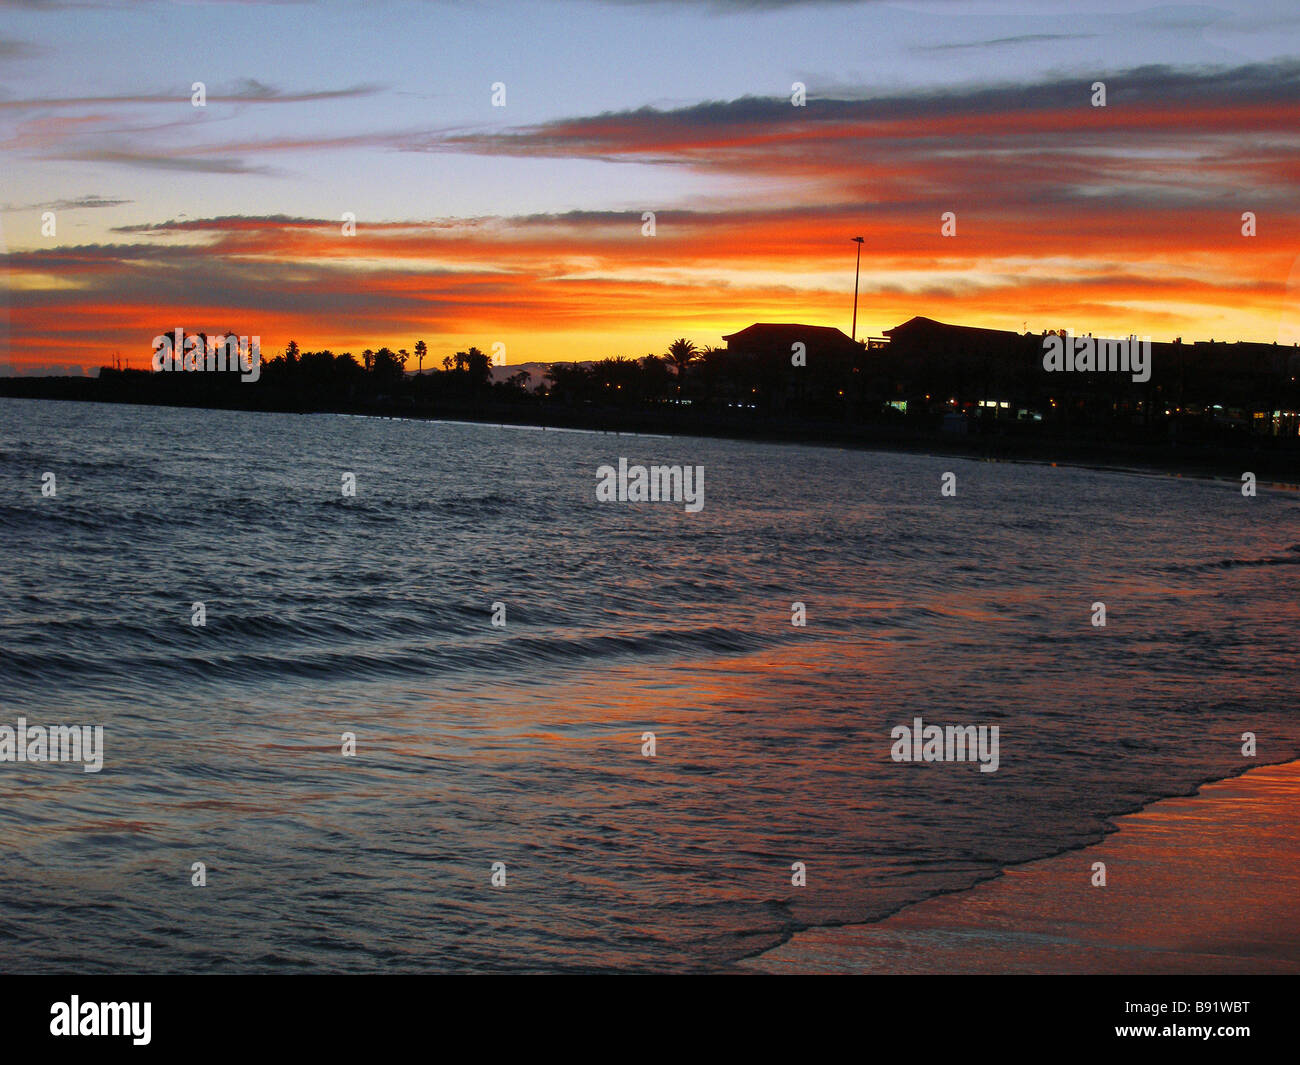 A glorious sunset in Tenerife - Stock Image